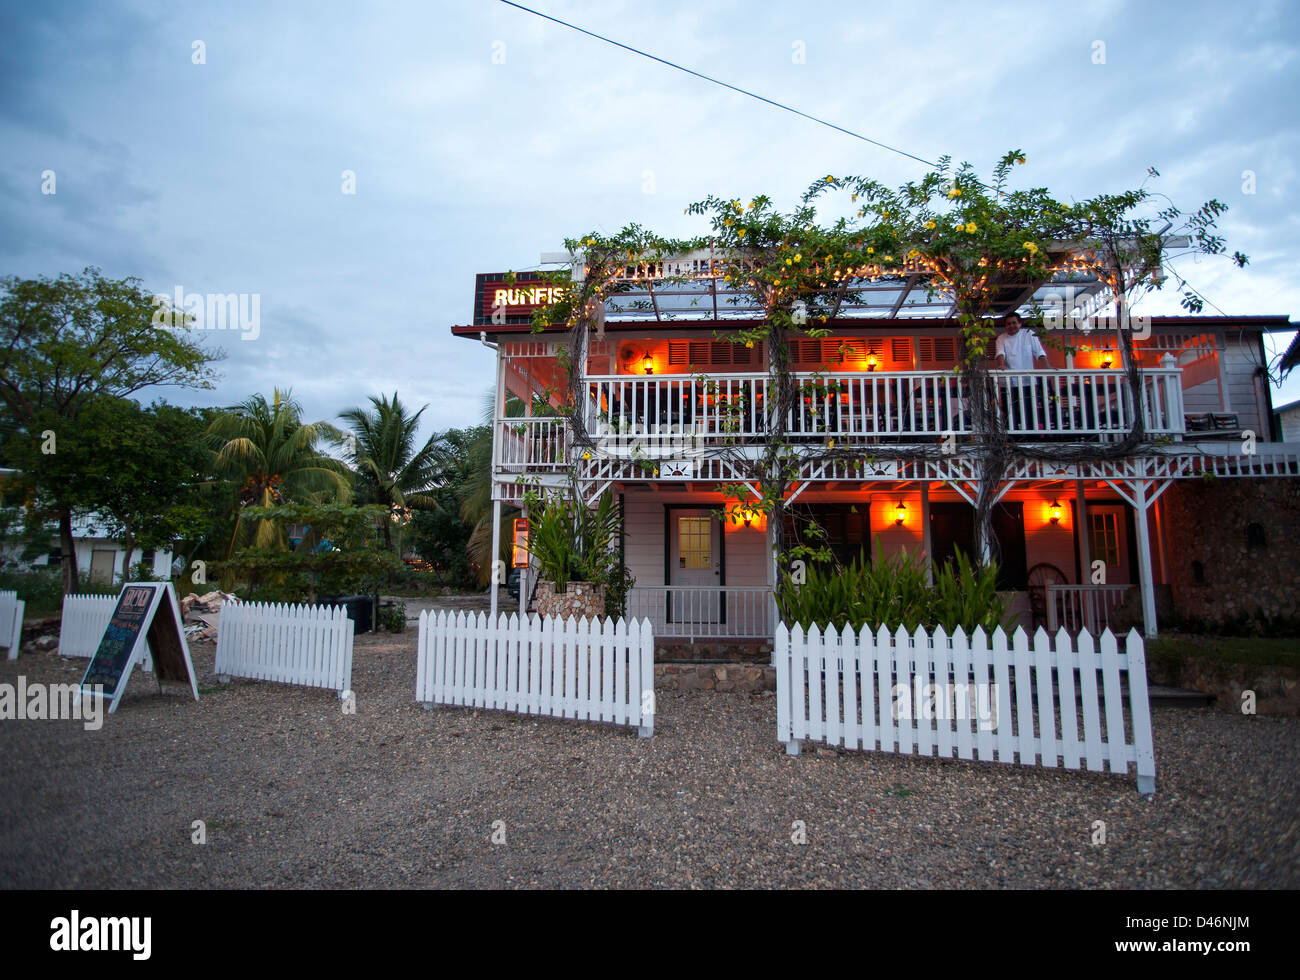 Rum fish at Placencia village - Stock Image